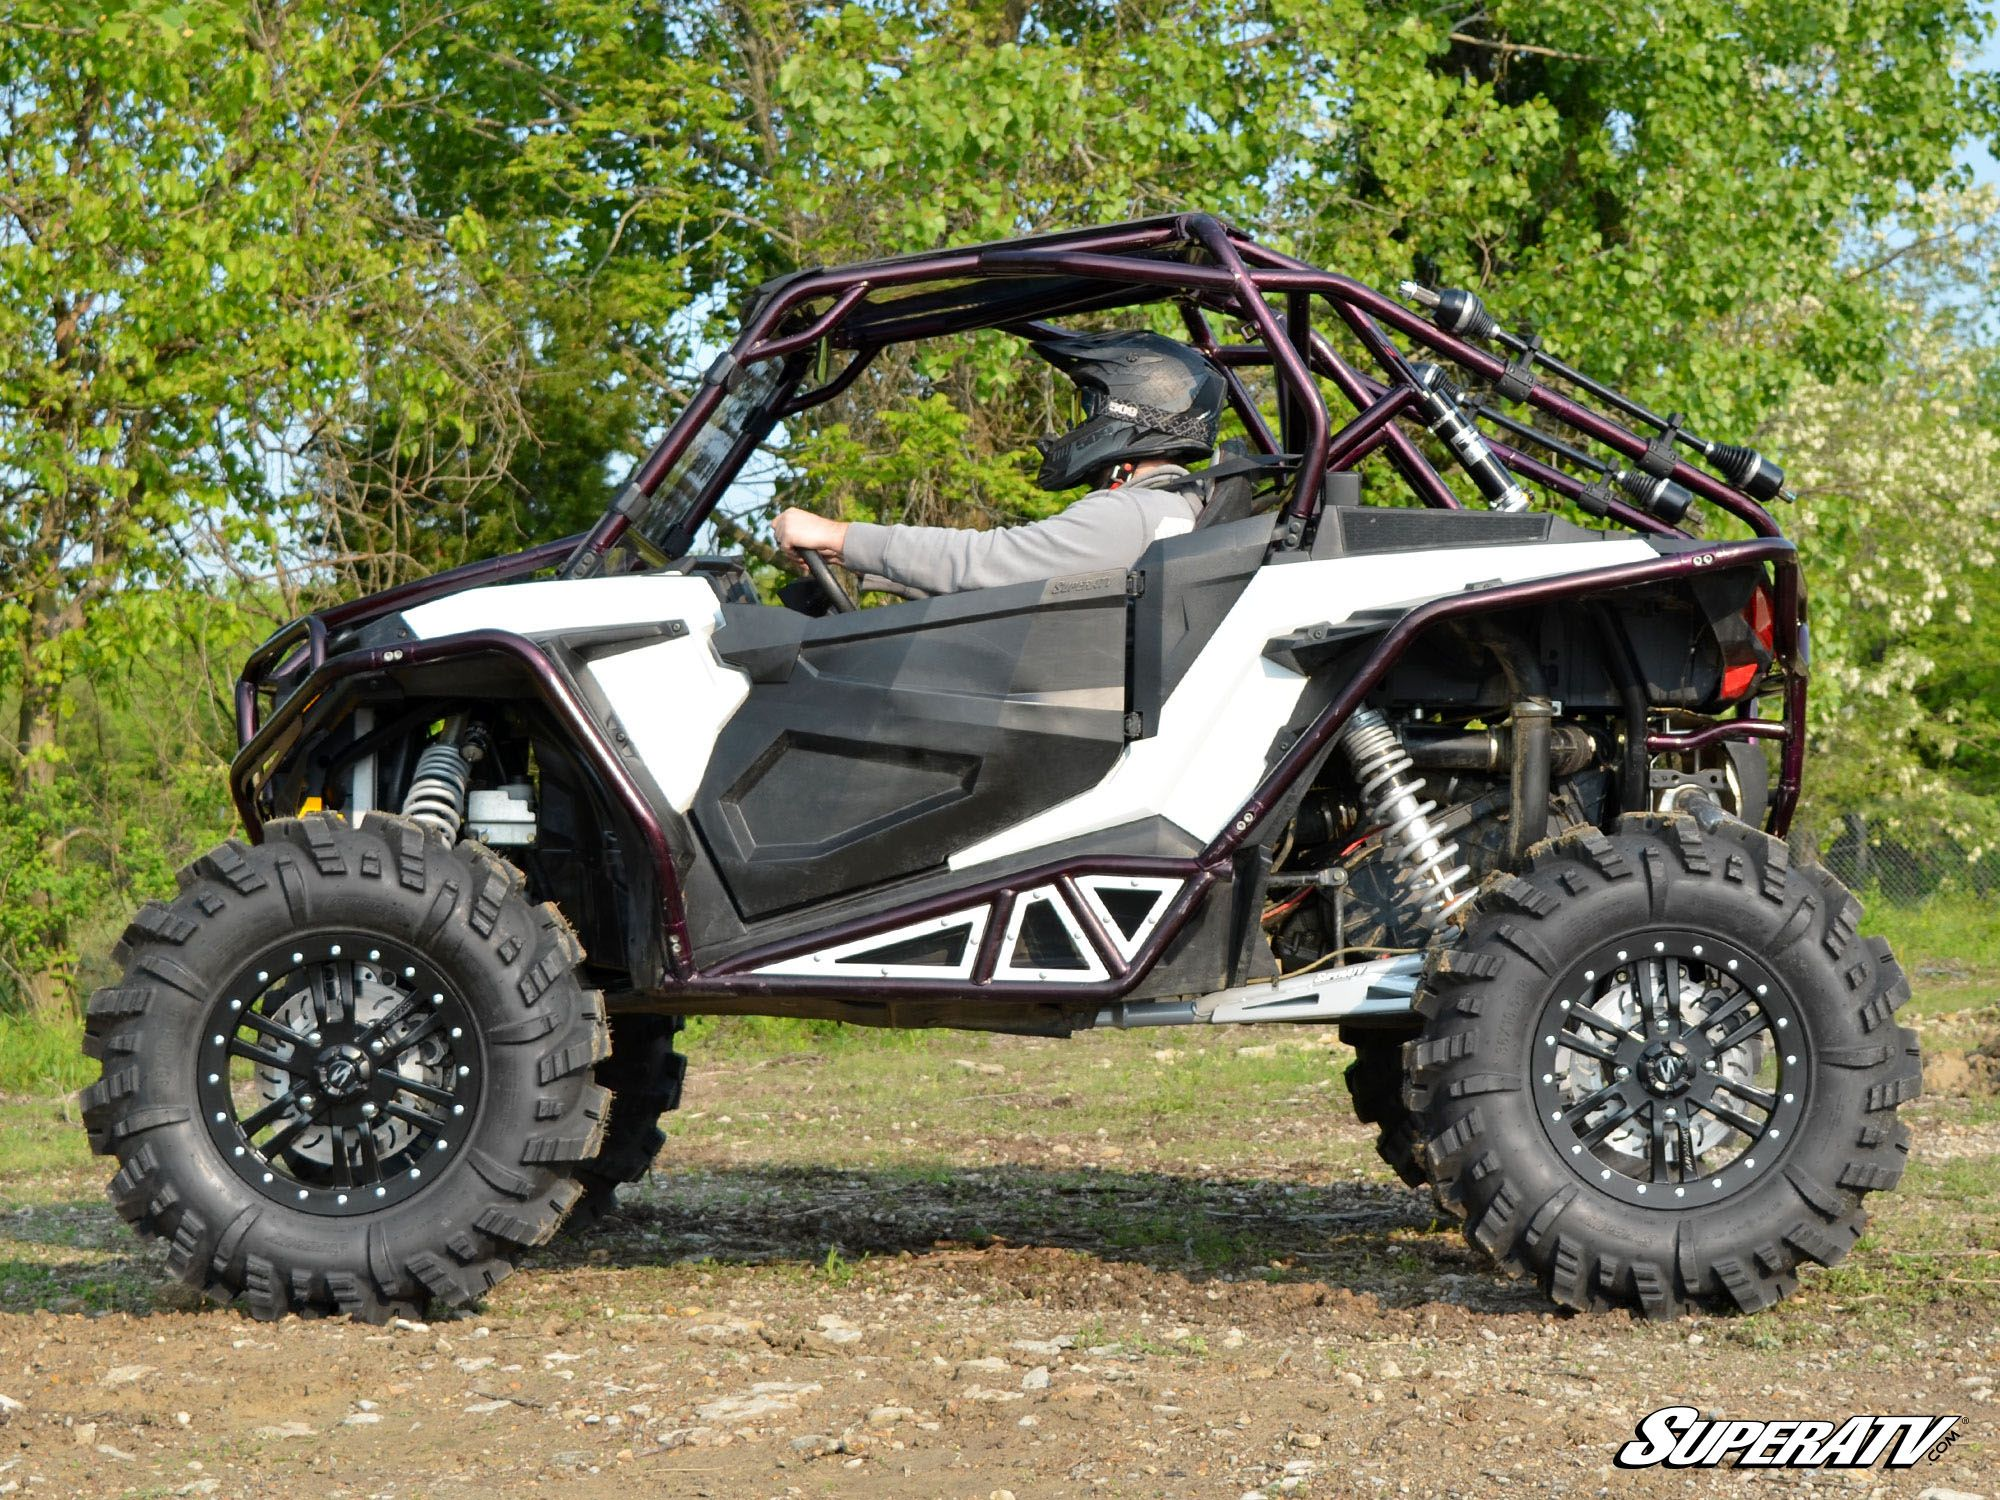 Quality aftermarket parts and accessories for your ATV/UTV/SXS! We specialize in suspension components and custom builds!